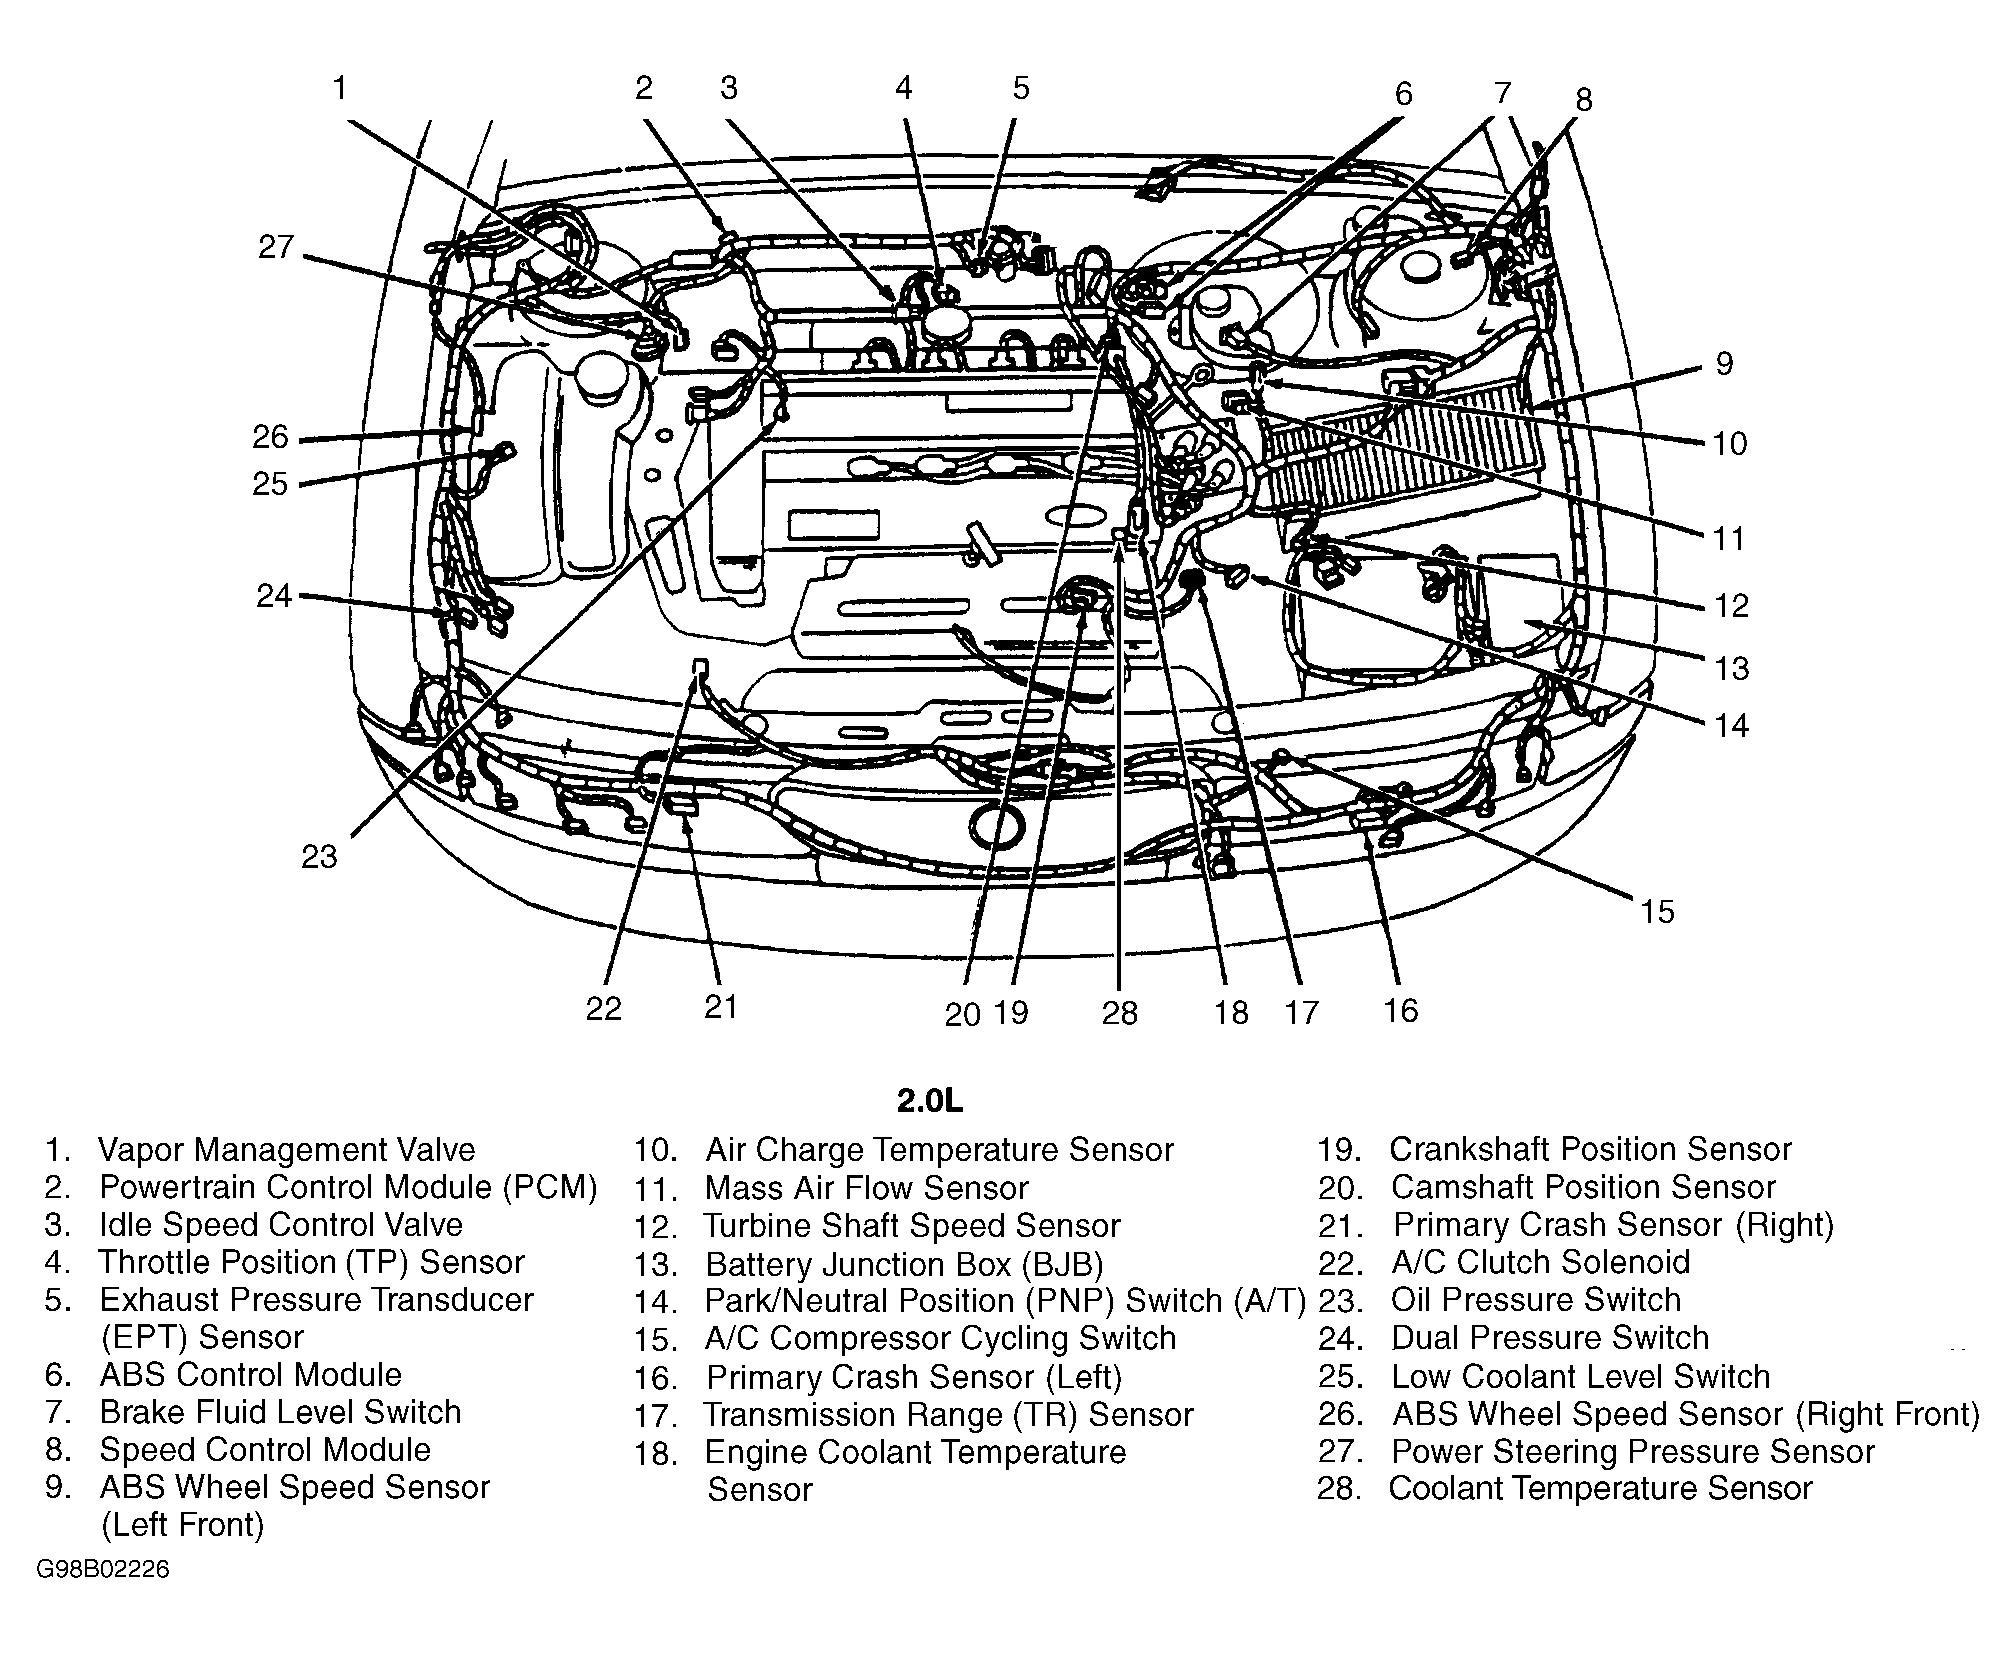 1997 mercury mountaineer serpentine belt  1996 ford club wagon fuse box  diagram